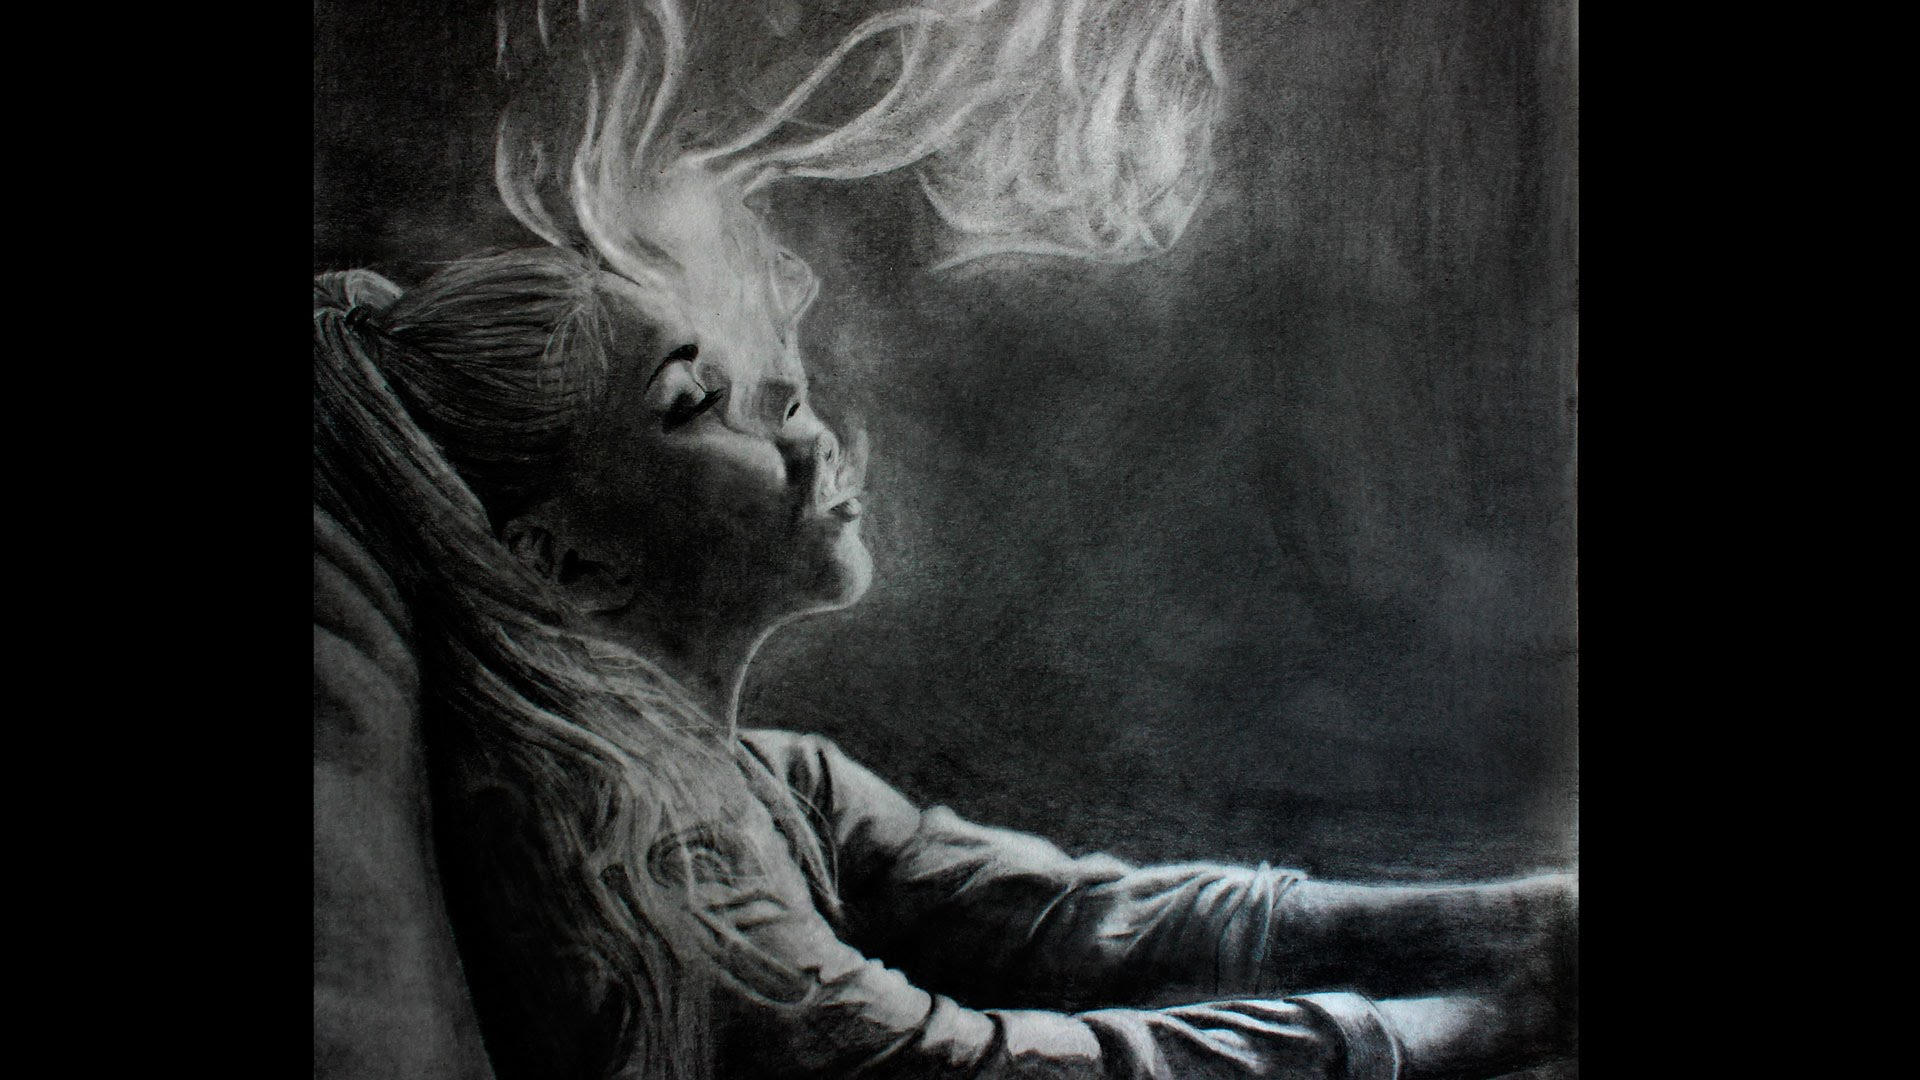 Drawn smoke face  Lapse Woman a YouTube